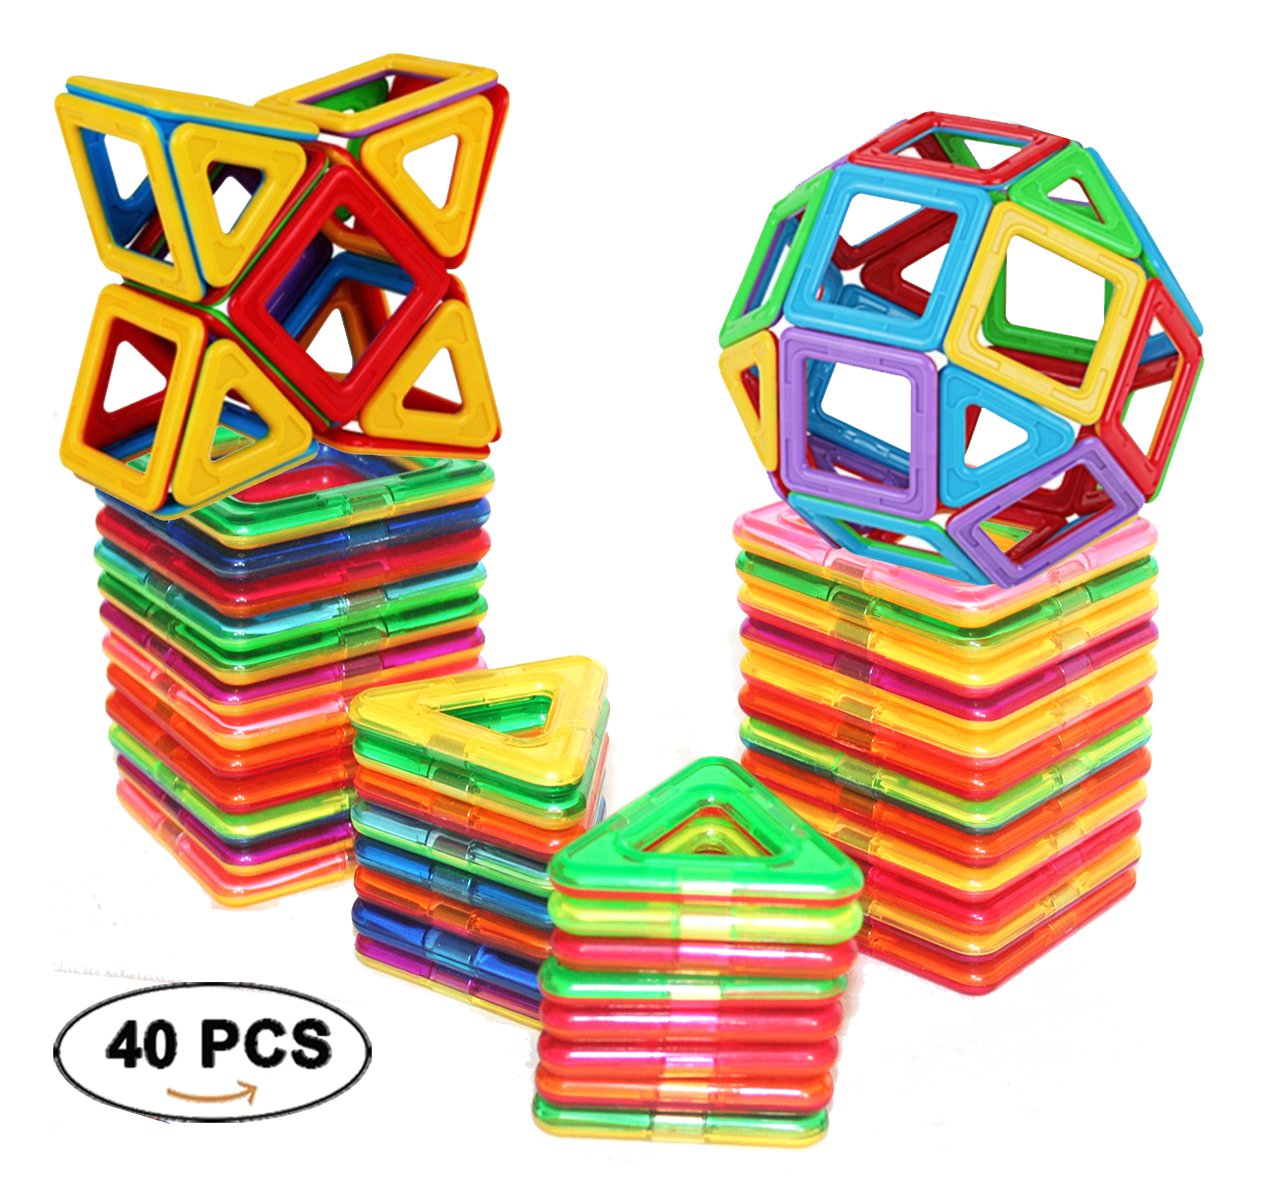 Magnetic Tiles Building blocks Toys by DreambuilderToy (40 PCS) Review